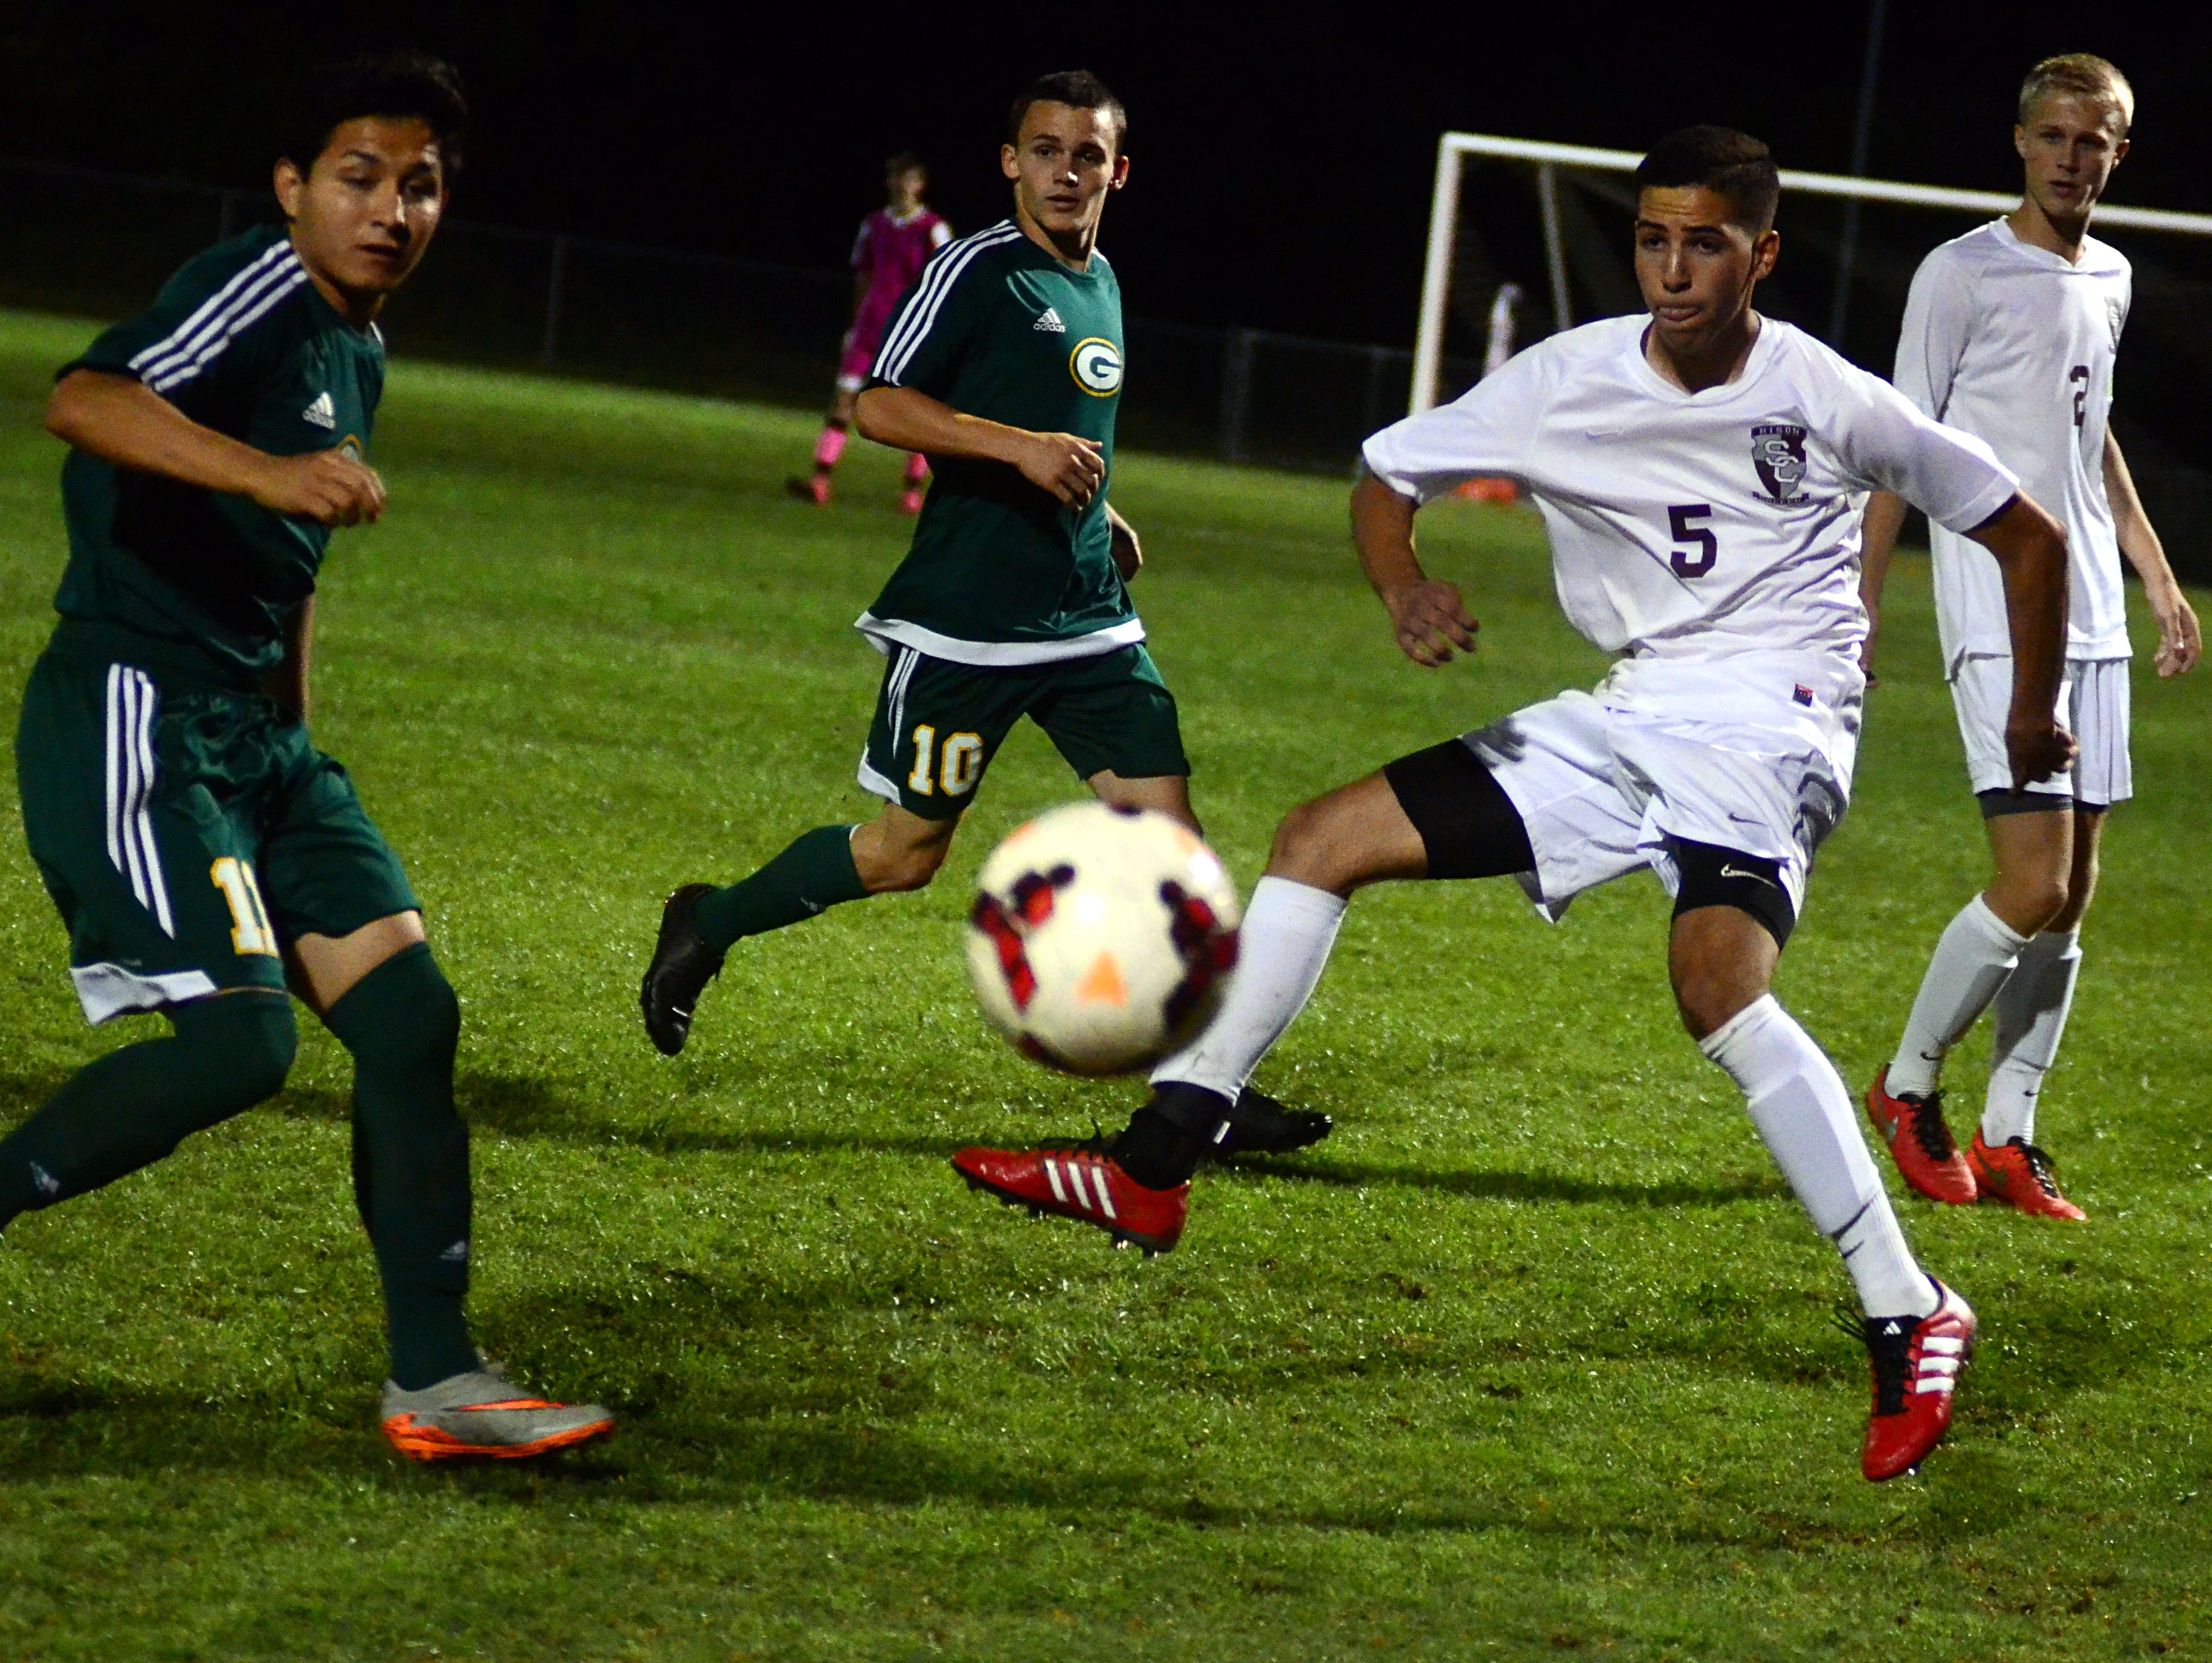 Station Camp High senior Dylan Grimsley clears the ball away from Gallatin junior Antonio Aquino (left) during first-half action.